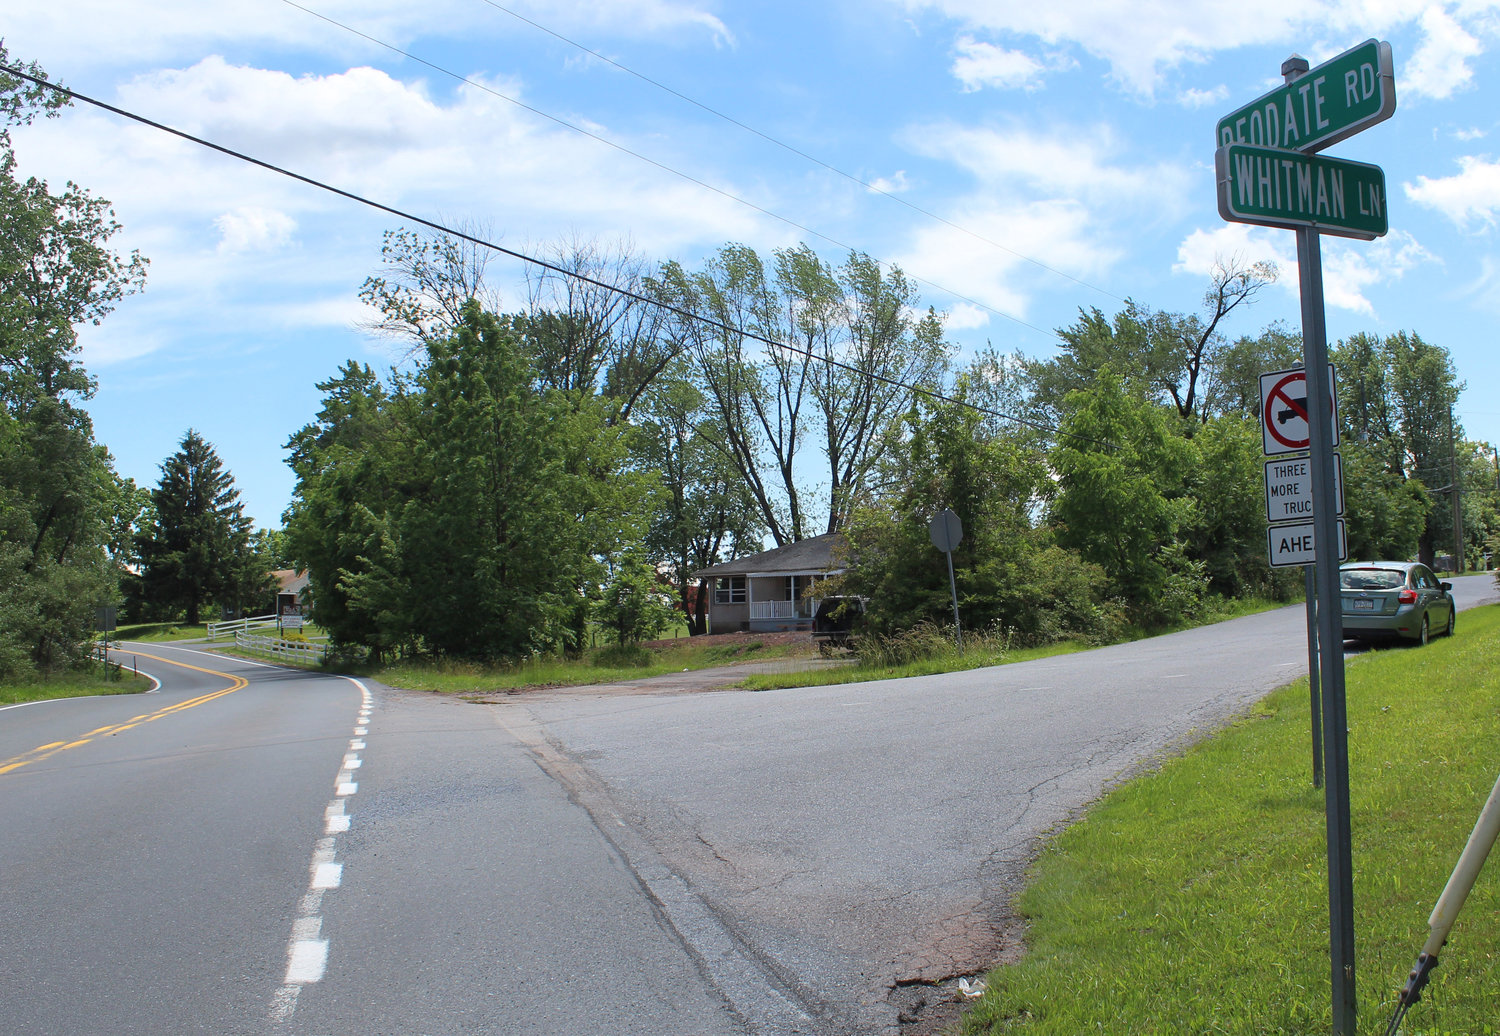 Londonderry Township is proposing to narrow this intersection of Deodate Road and Whitman Lane.